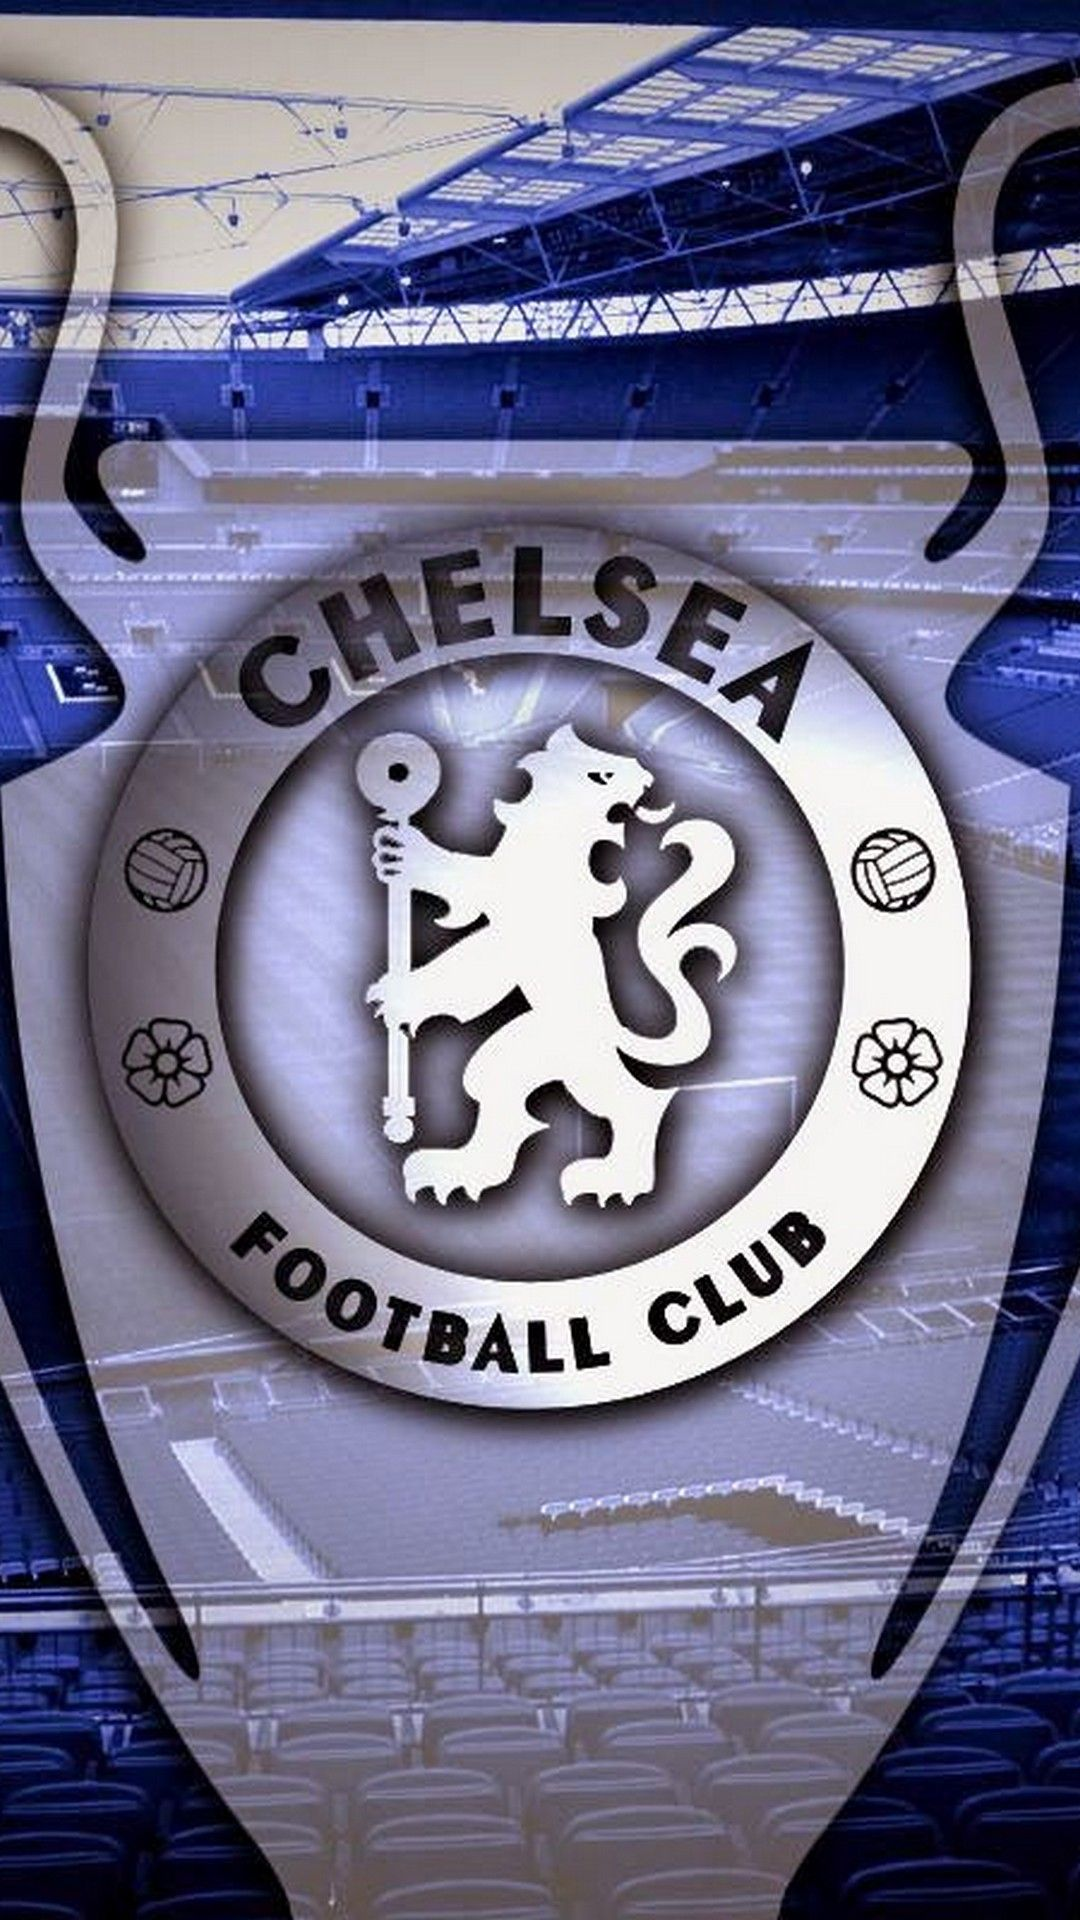 Chelsea Wallpaper iPhone HD (Dengan gambar) Sepak bola